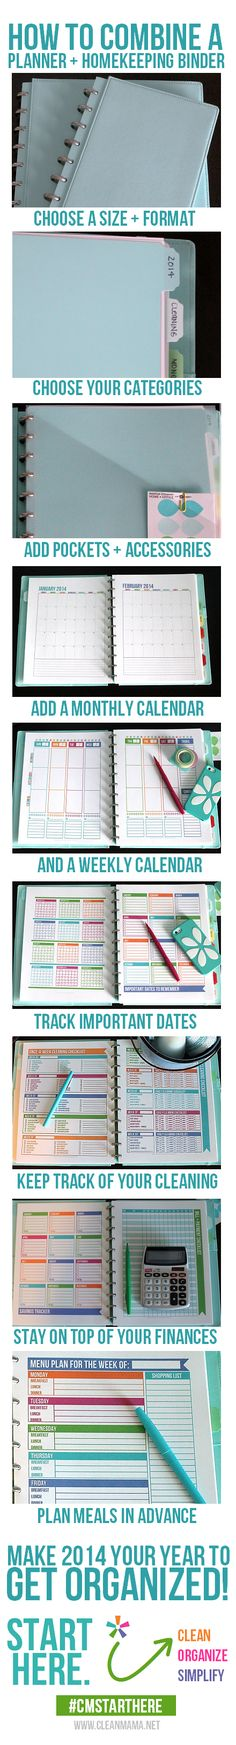 Start Here. Week 1 - Calendar + Bill Pay (How to Combine Your Planner + Homekeeping Binder) - Clean Mama